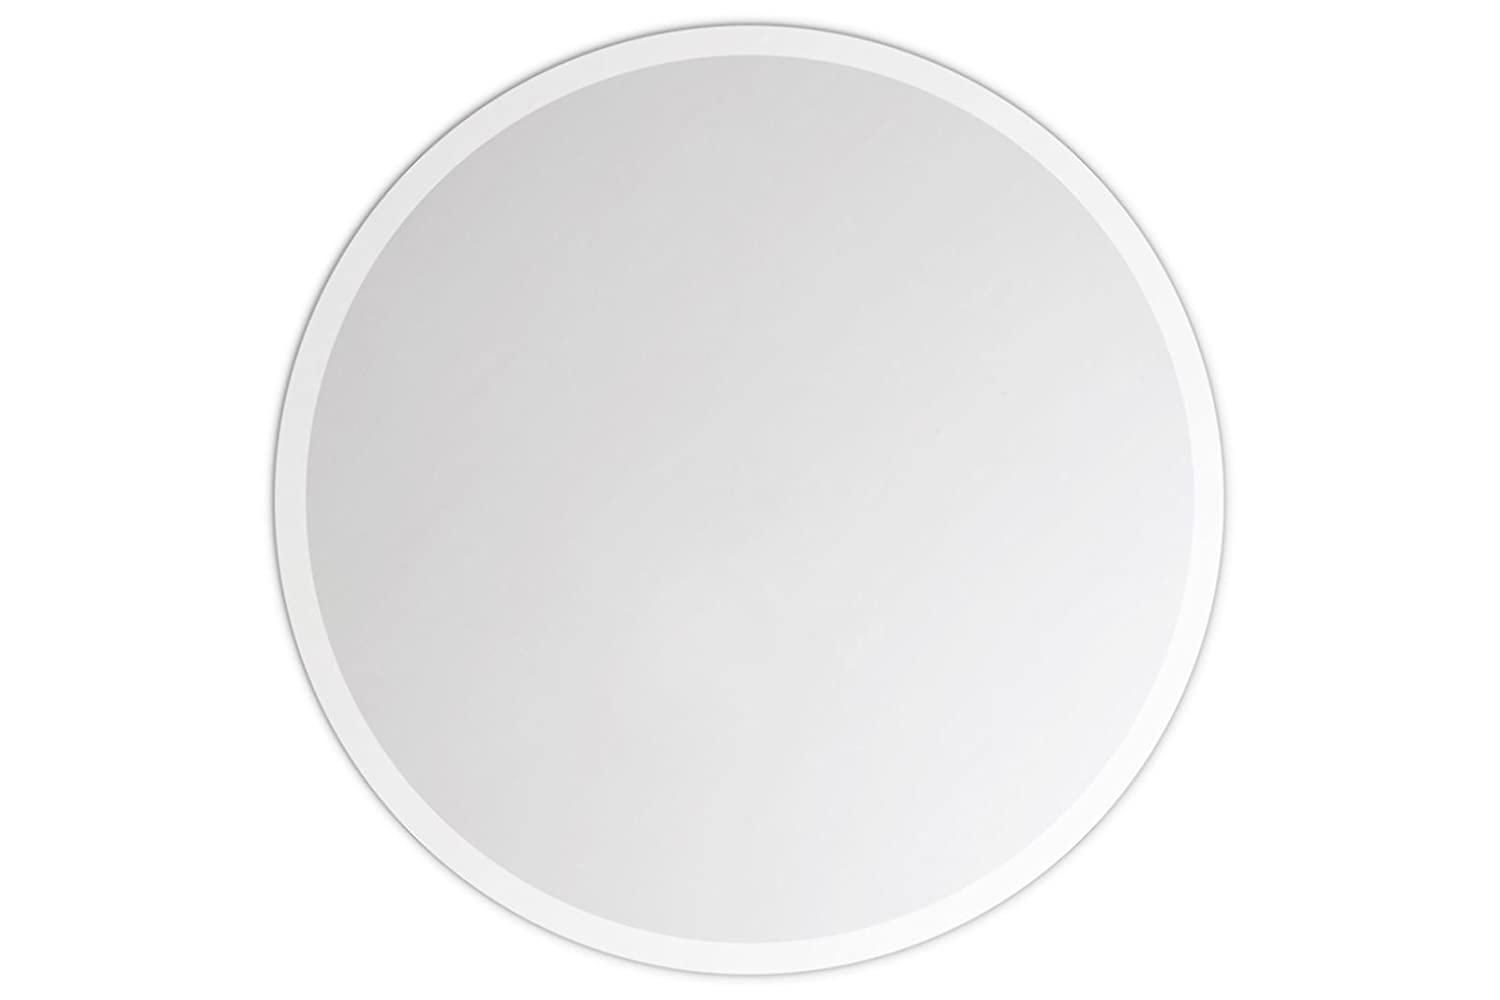 Lindner & Koch - Hanging Wall Mirror/Real Glass Mirror: Round and Bevelled, with Mounting Plate, 20cm Diameter